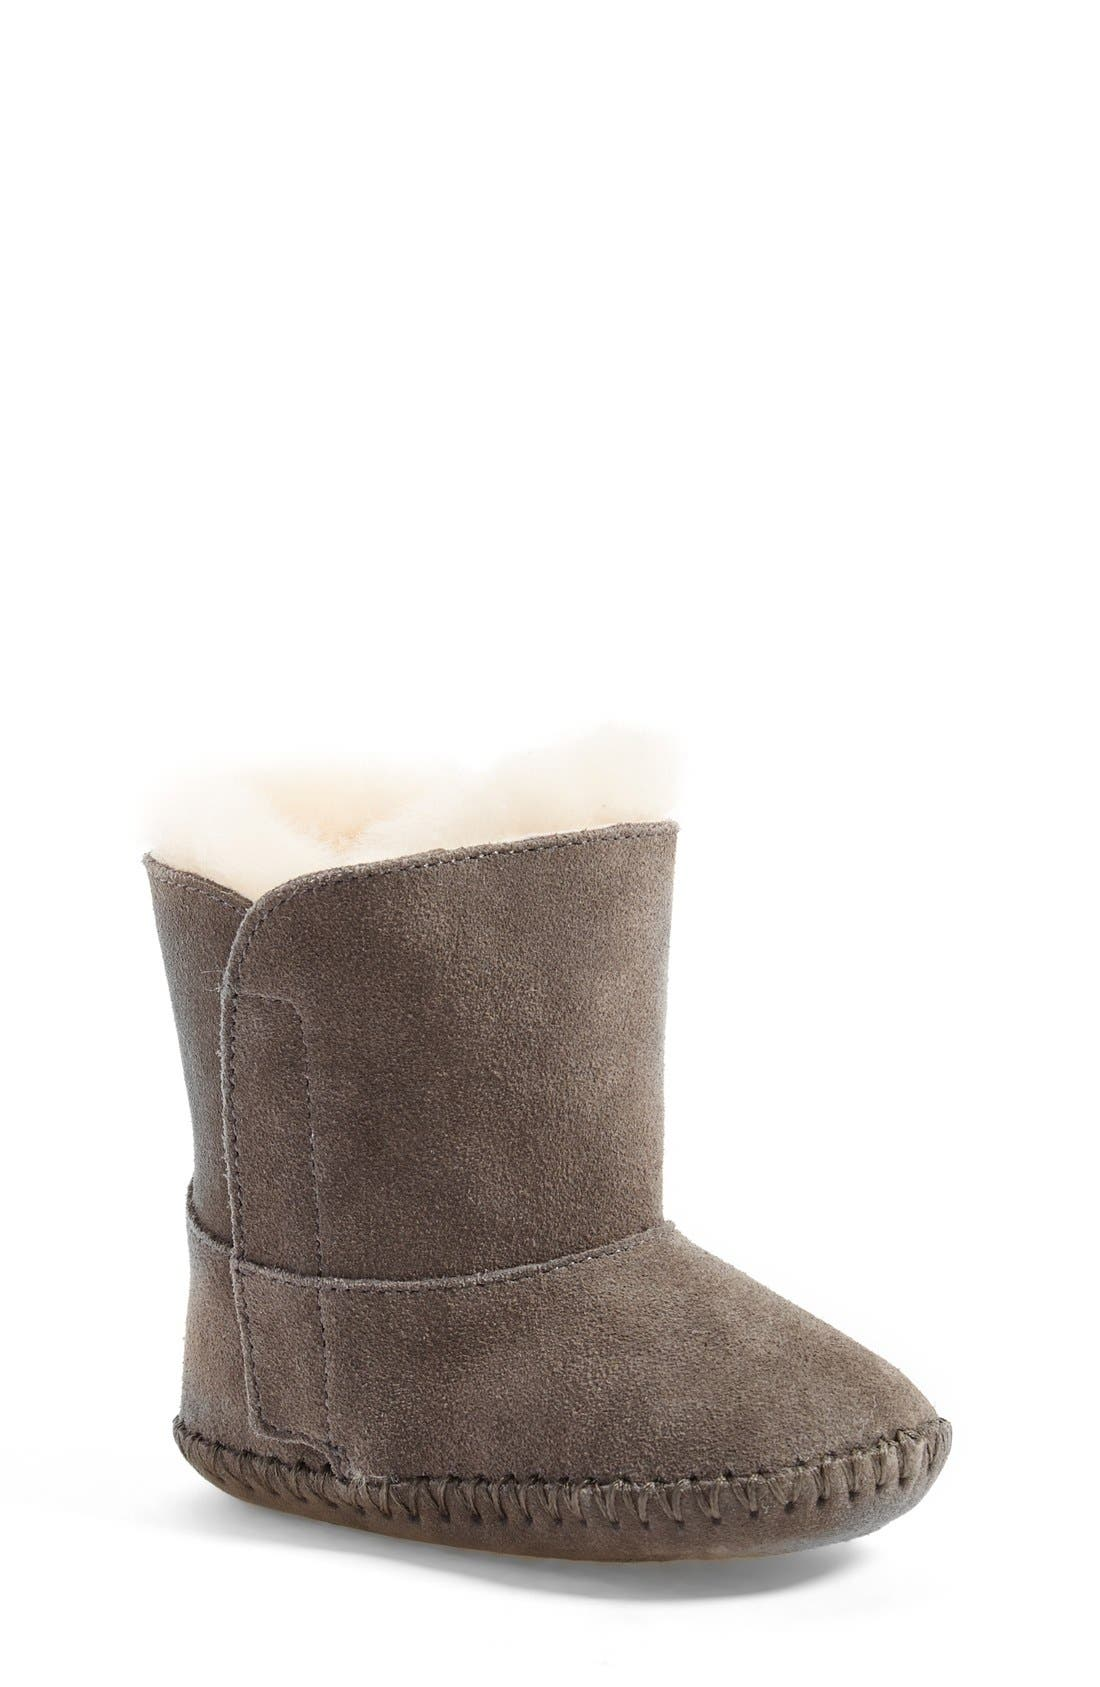 Main Image - UGG® Caden Boot (Baby & Walker) (Nordstrom Exclusive)